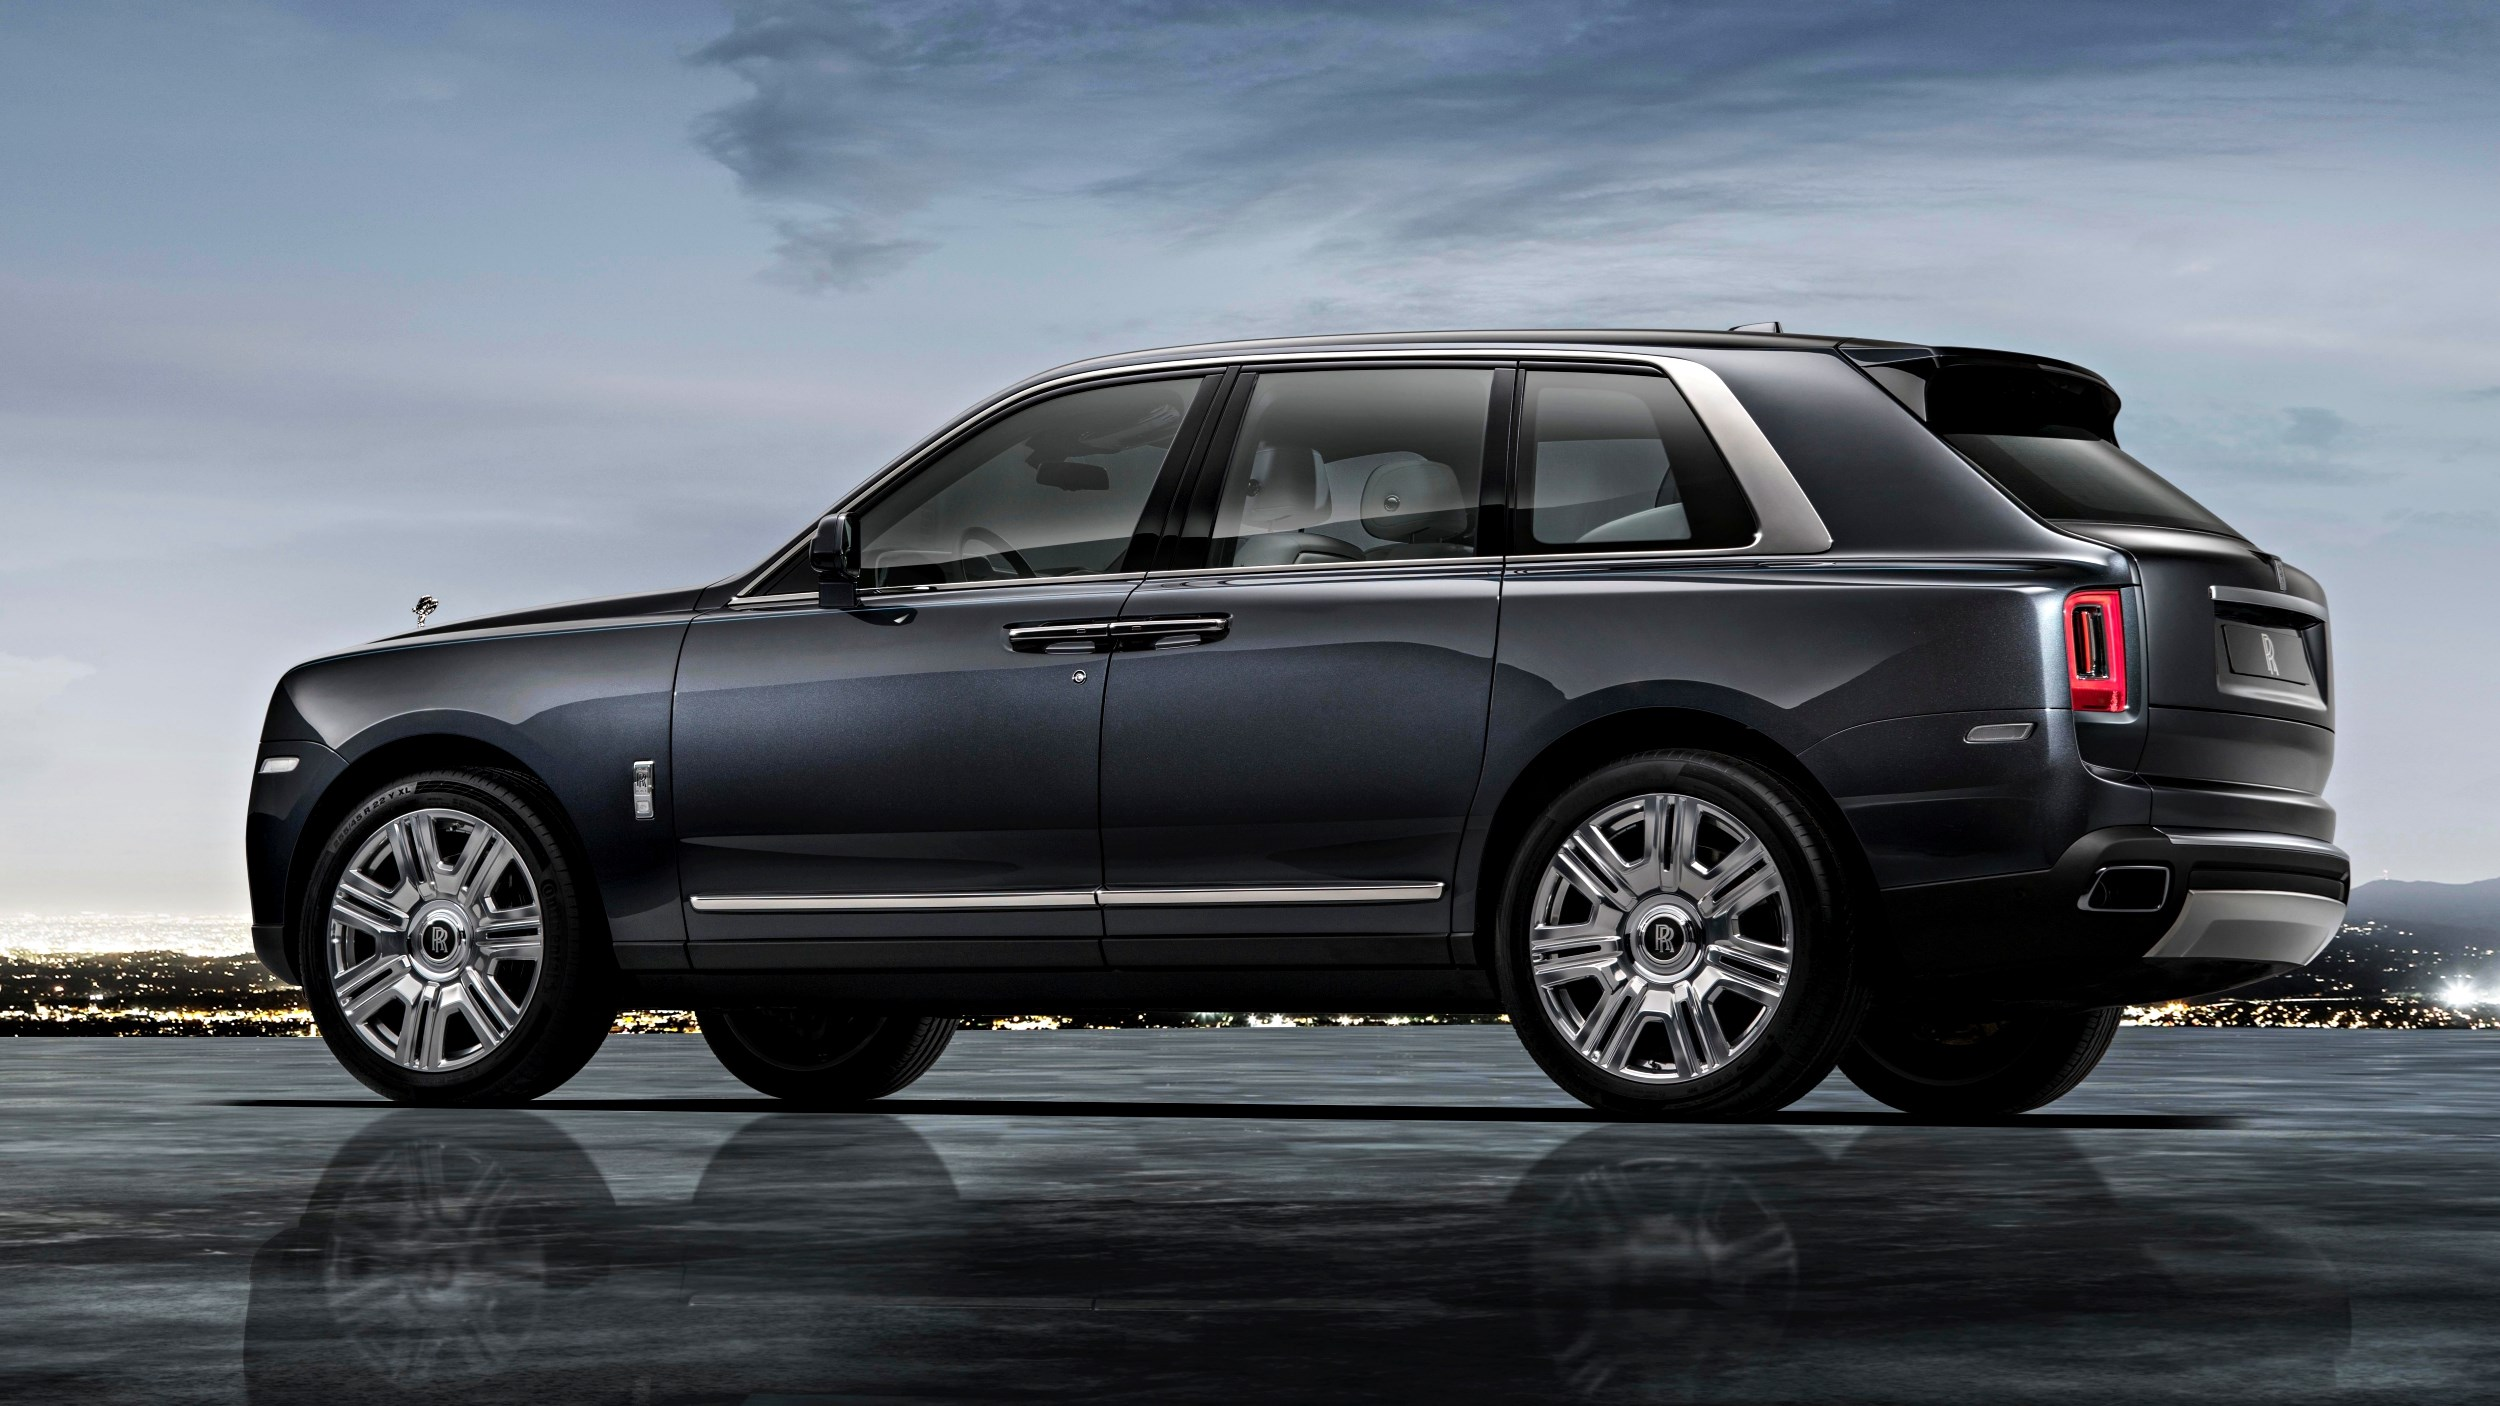 2019 Rolls-Royce Cullinan Takes Luxury Everywhere Thumbnail